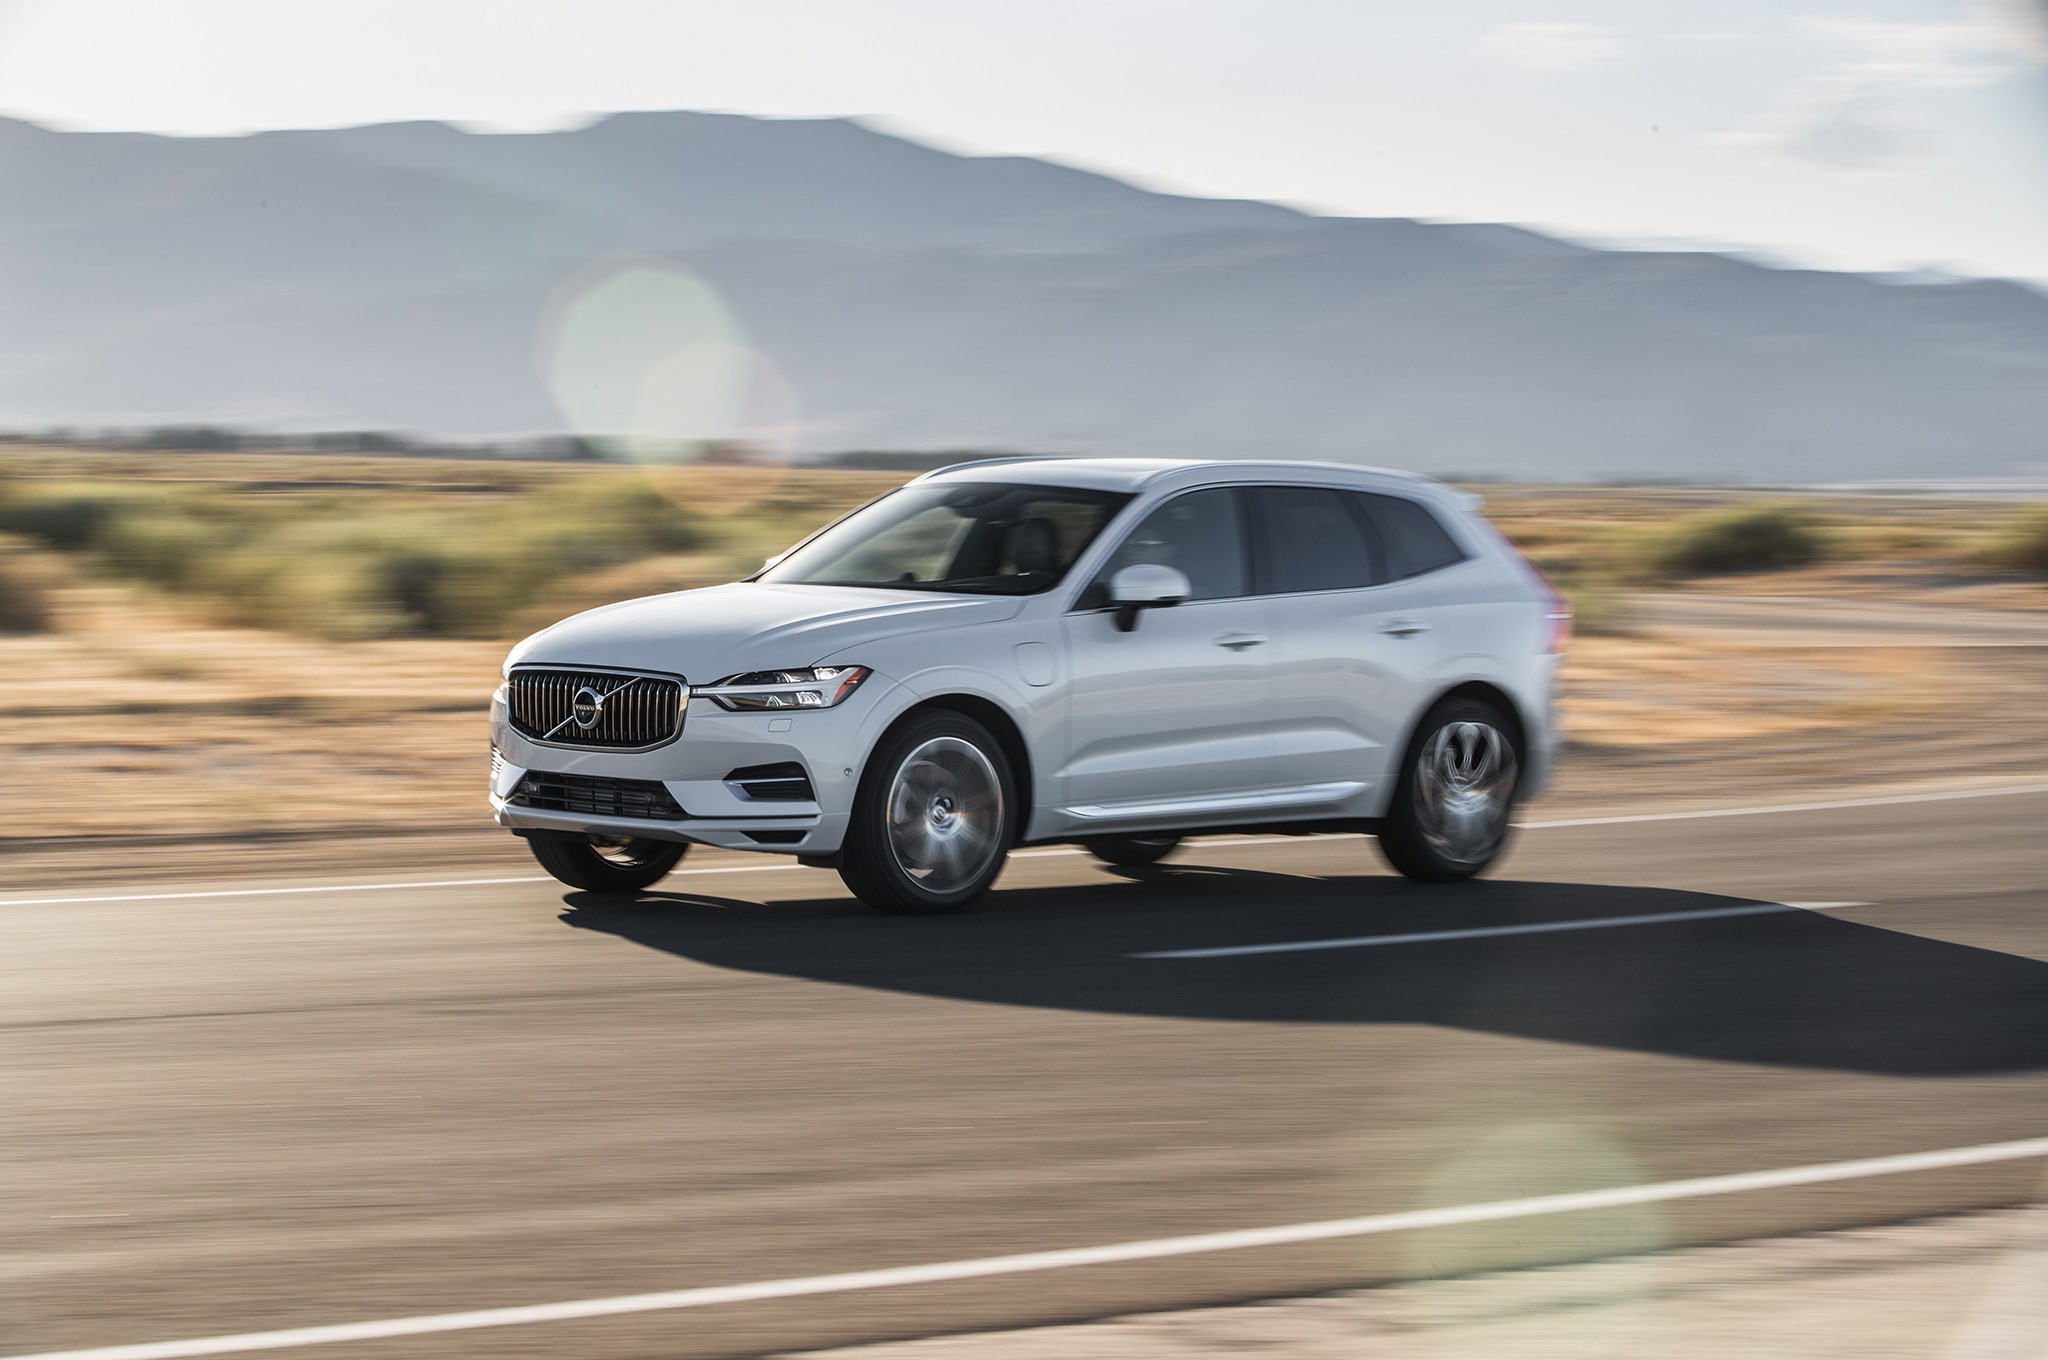 2018 Volvo XC60 T8 Inscription Front Side In Motion